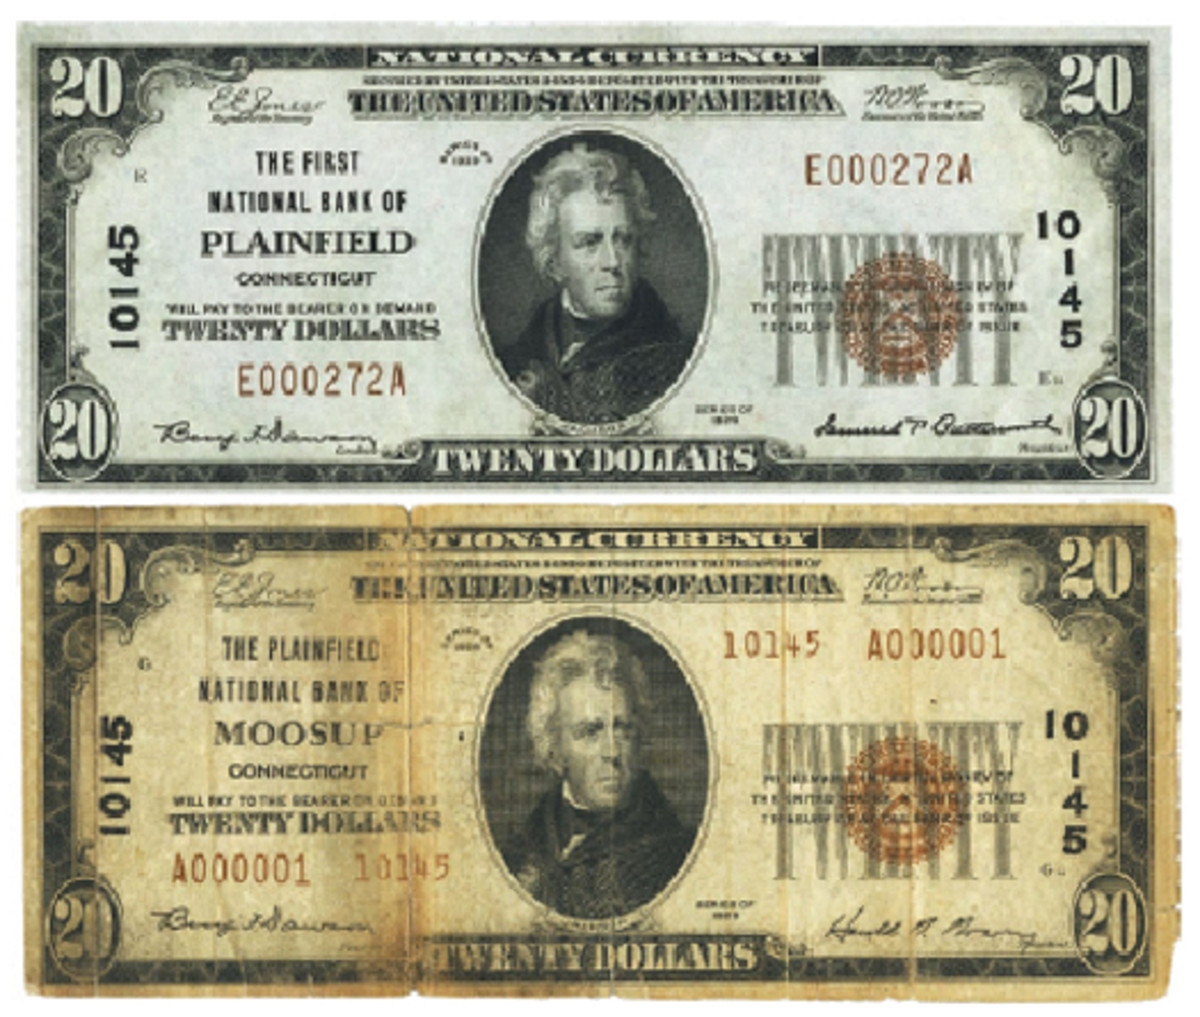 Figure 1. A Series of 1929 note issued by The First National Bank of Plainfield, Connecticut (top). After June 22, 1934, the issuing institution's name was The Plainfield National Bank of Moosup (bottom).